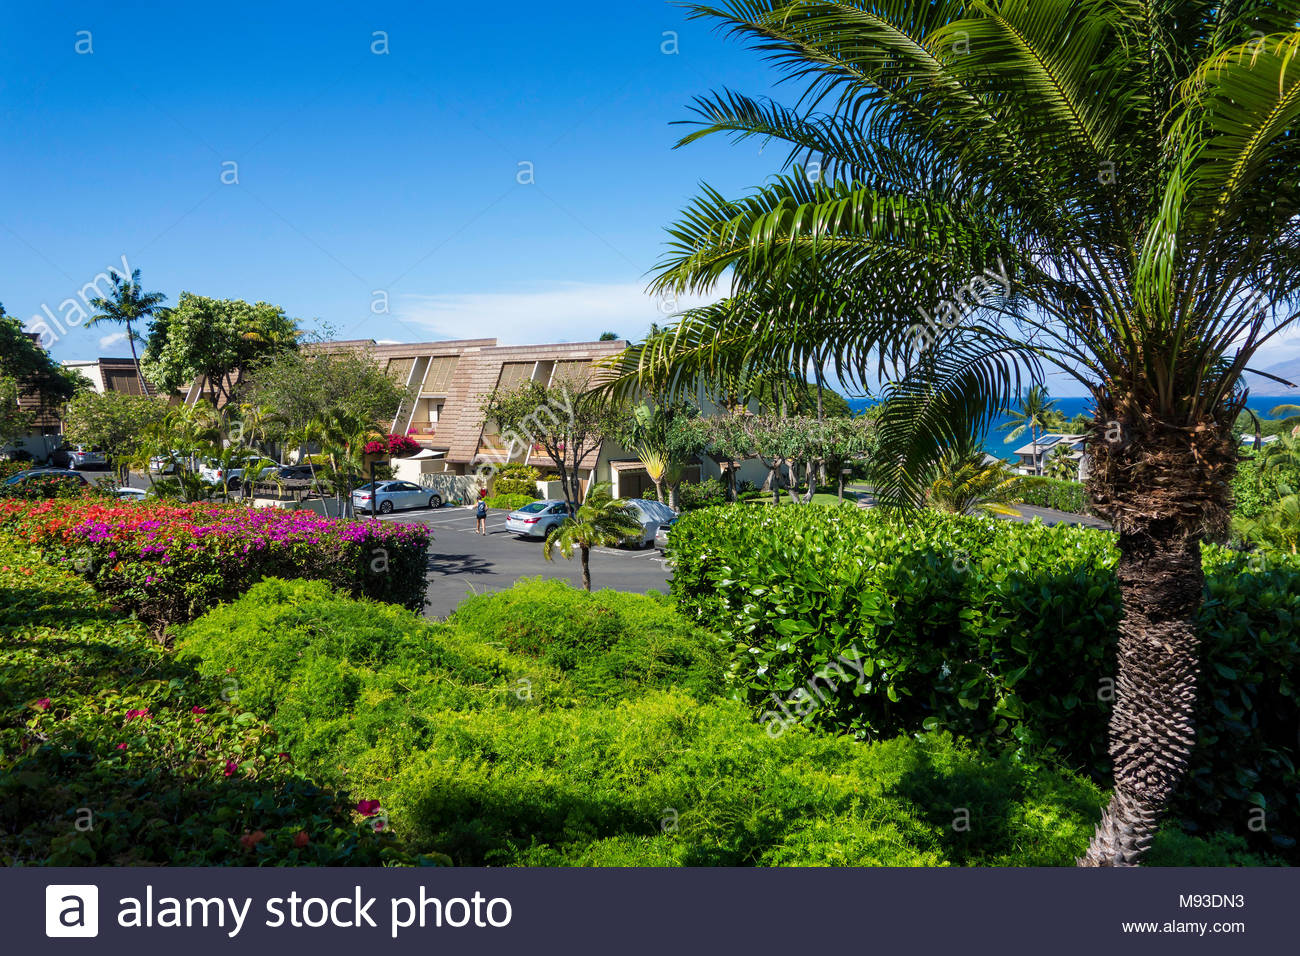 Condominium apartment resort rentals at Kihei on the island of Maui in the state of Hawaii USA Stock Photo